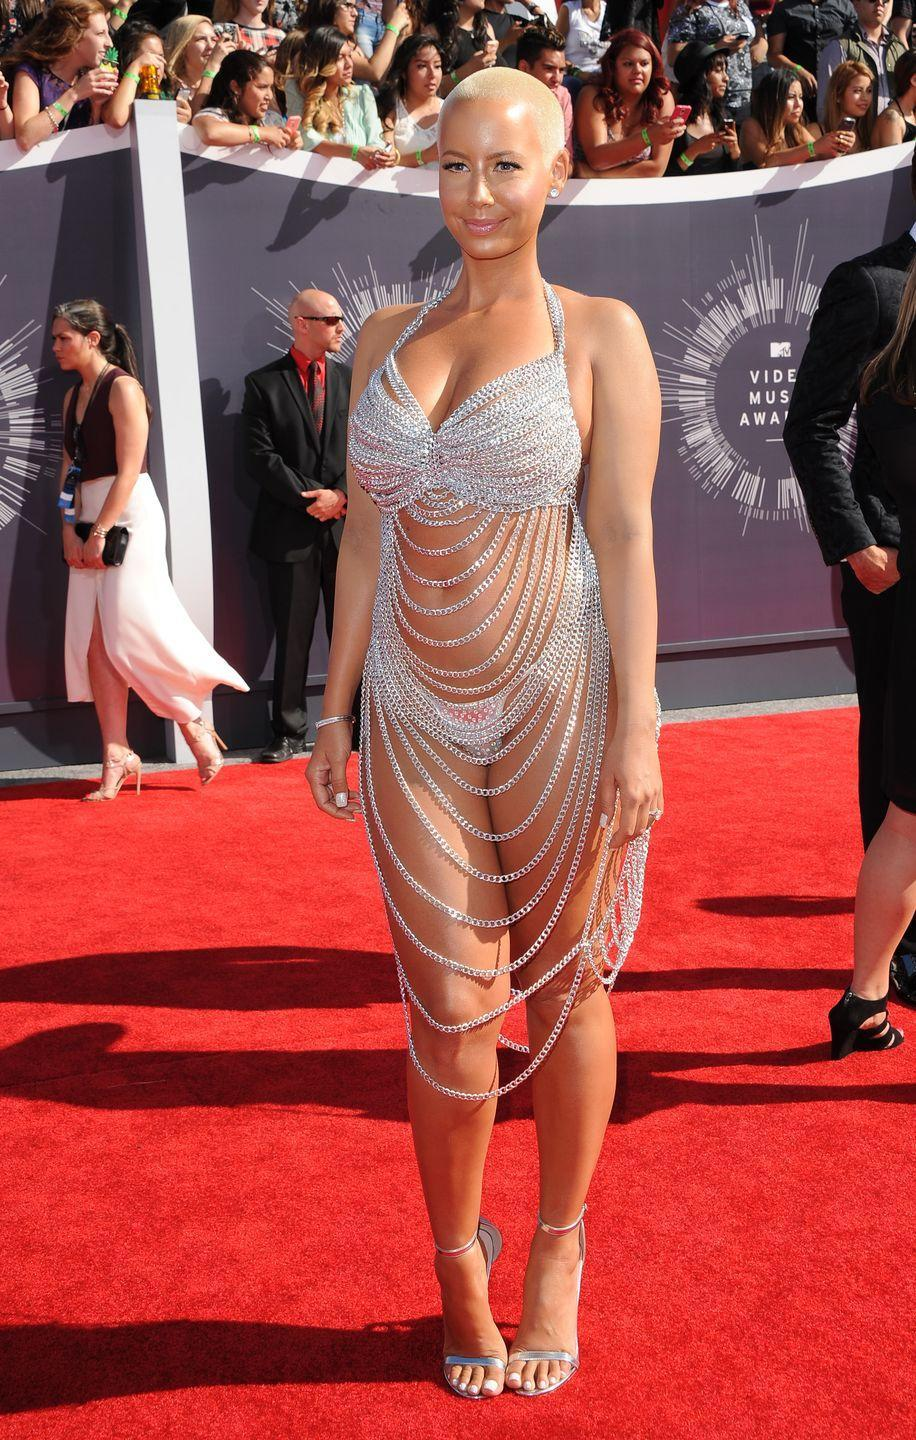 <p>At the 2014 Video Music Awards, Amber Rose tried her best to out-naked everyone else.</p>